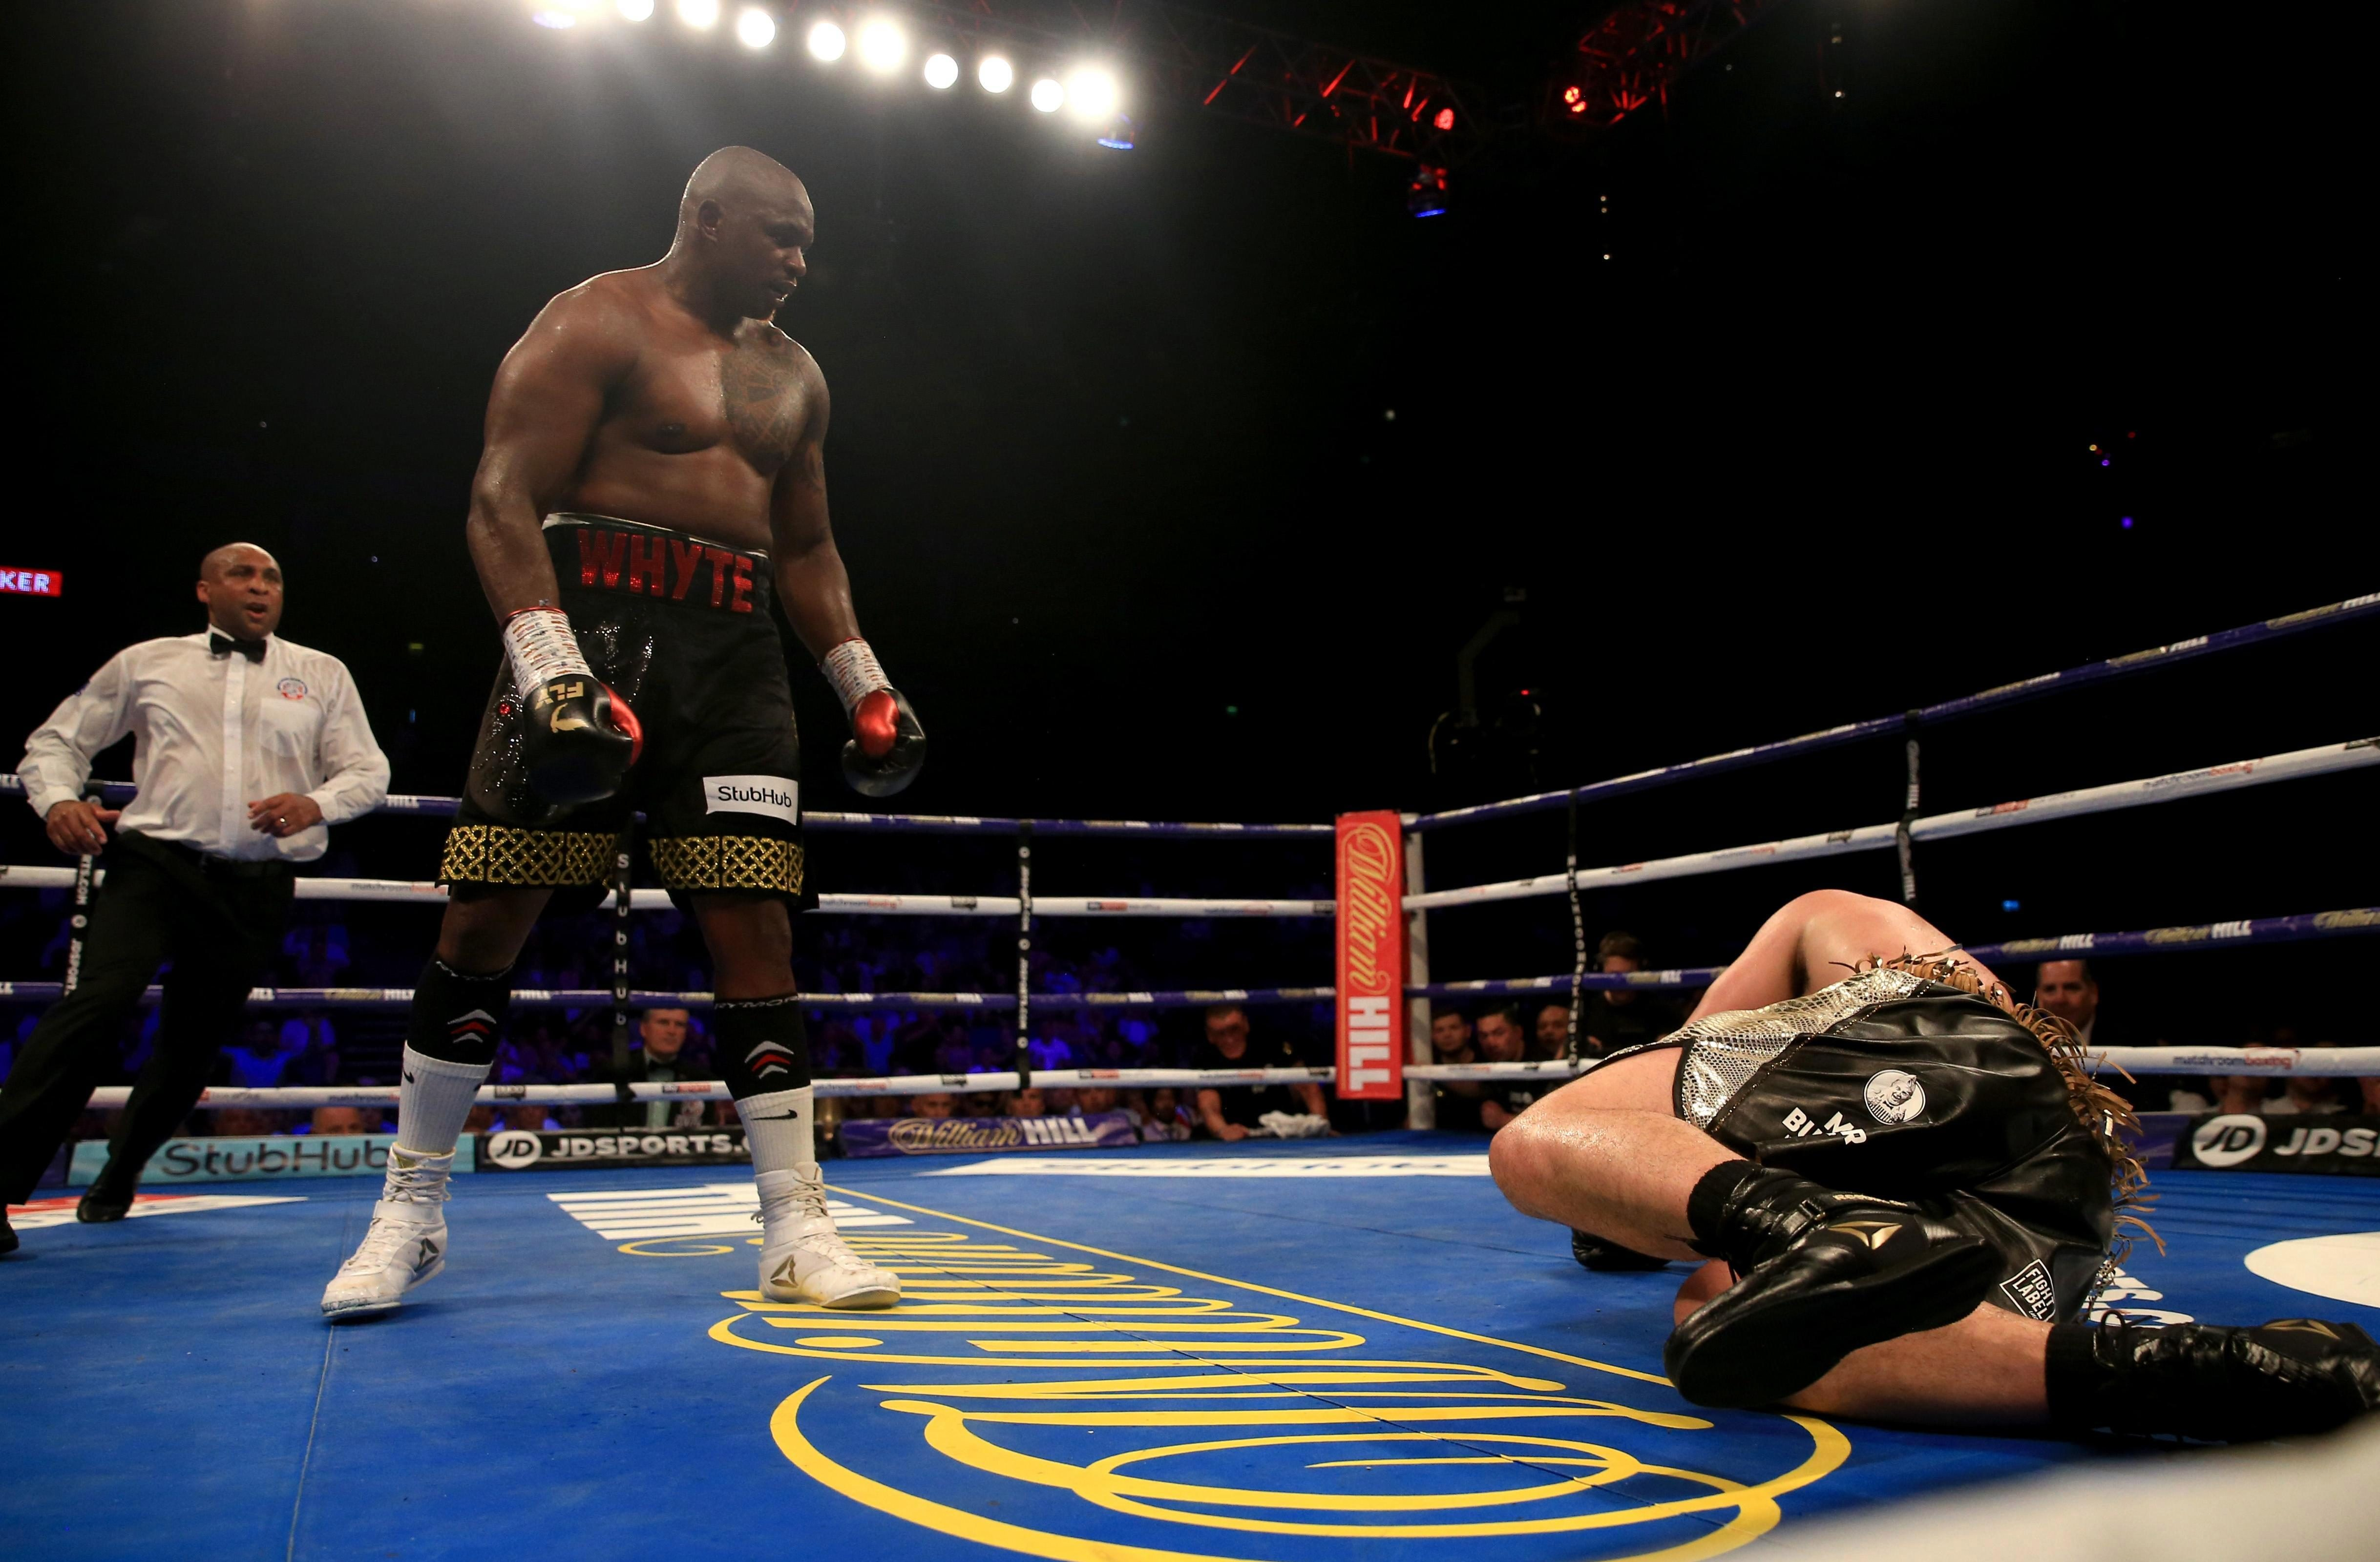 Dillian Whyte dominated for the majority of the fight